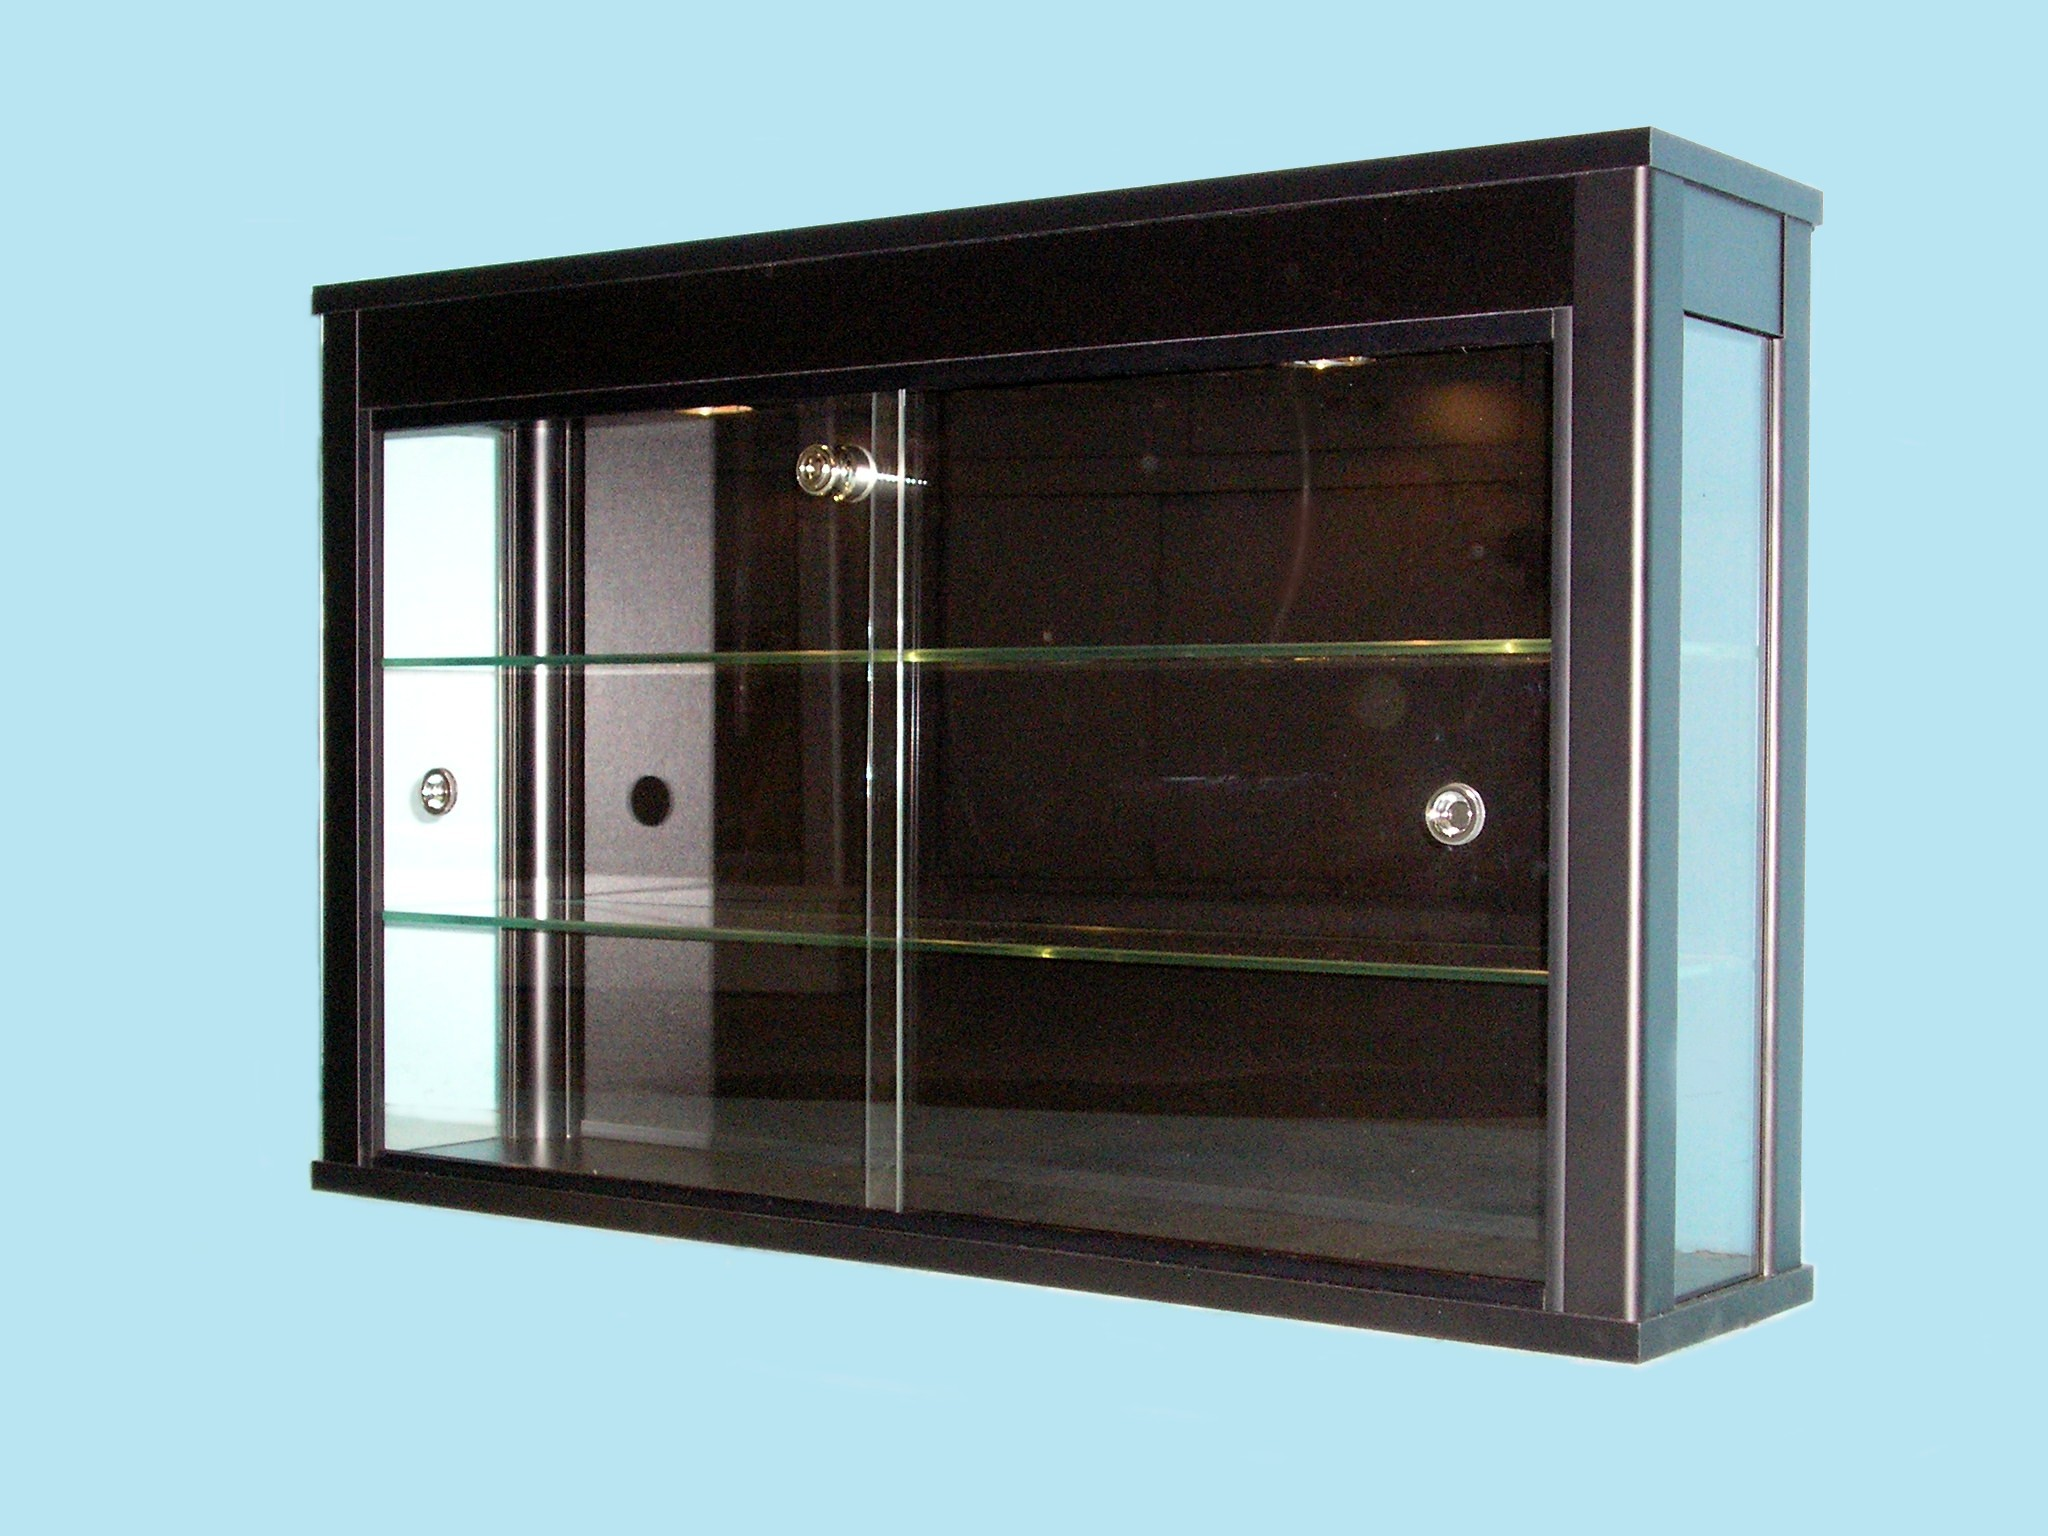 Designex Cabinets D31 black wall mounted glass display cabinet